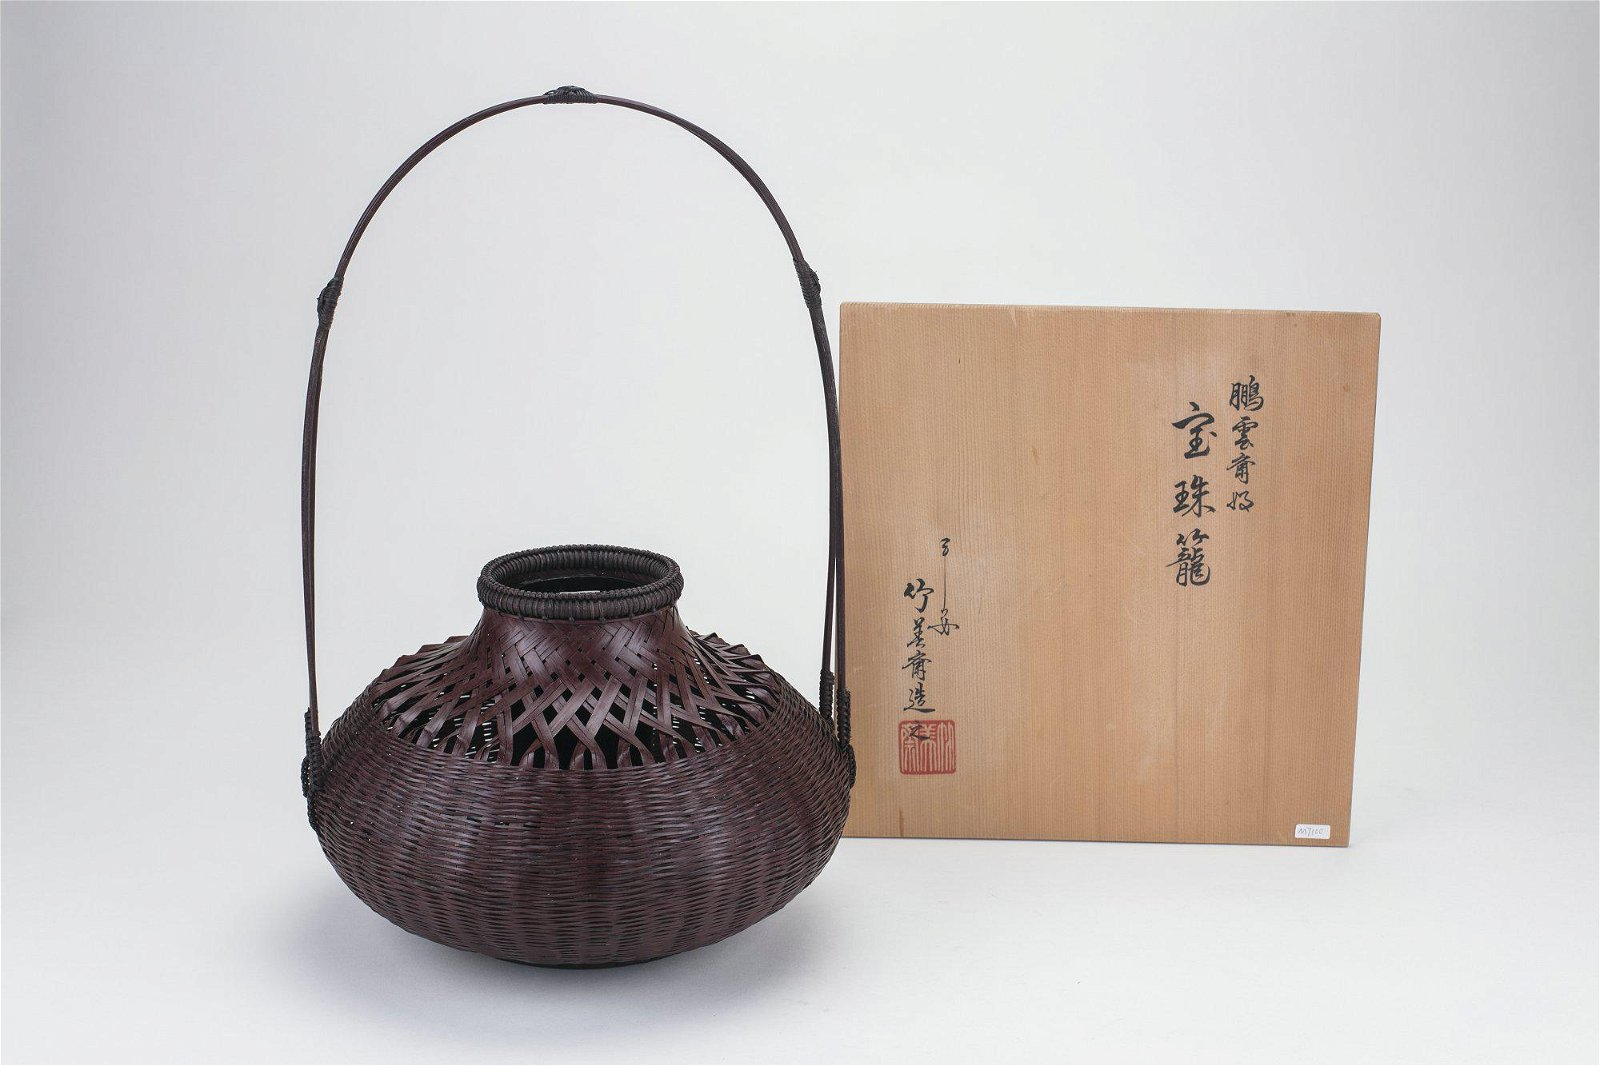 Carved Bamboo Basket With Handle